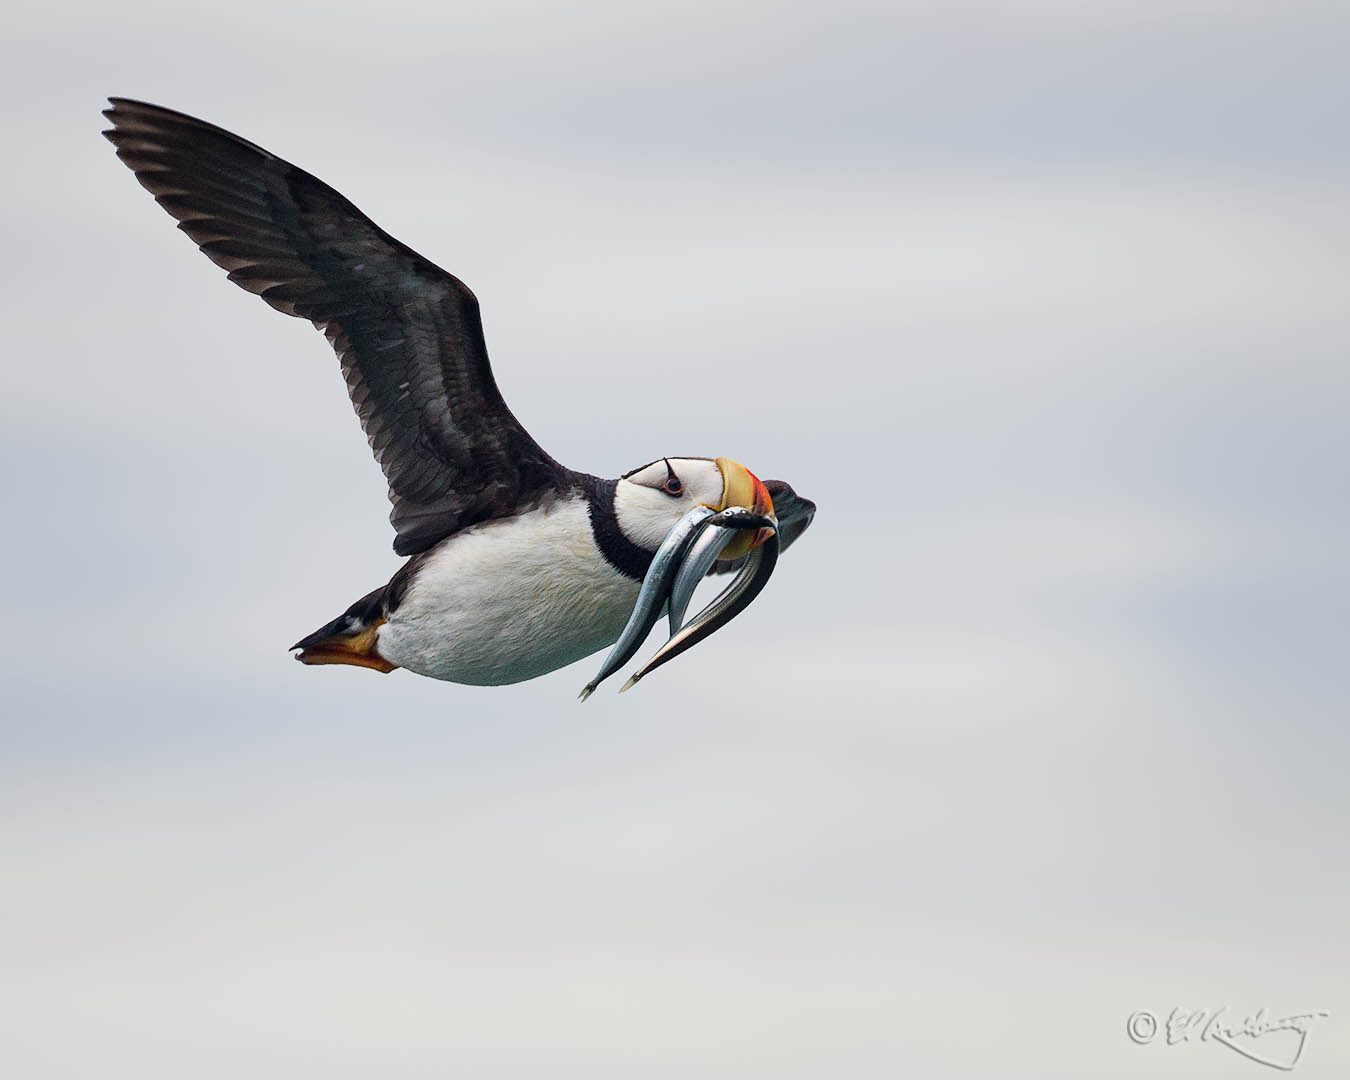 Pacific_Puffin_in_flight_with_sand_eels